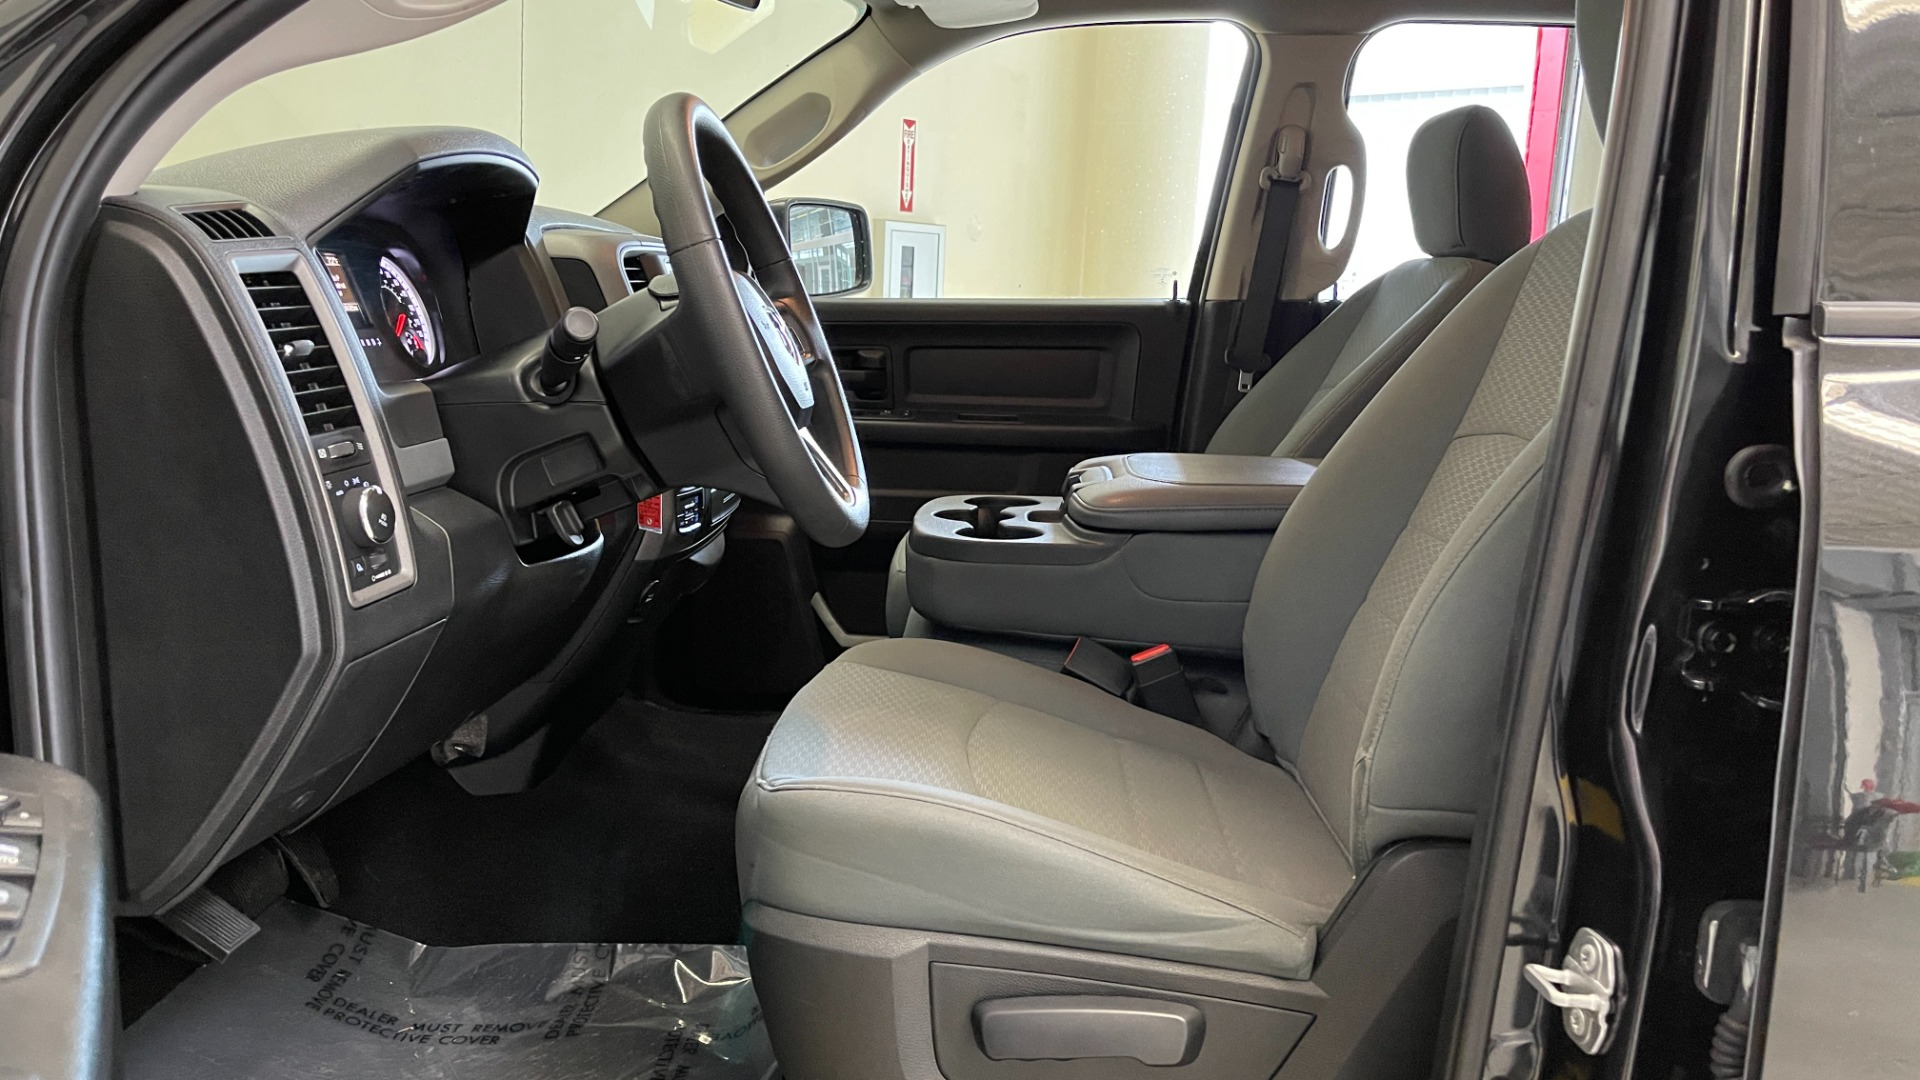 Used 2018 Ram 1500 EXPRESS CREWCAB 4X4 / 3.6L V6 / 8-SPD AUTO / REARVIEW for sale $36,495 at Formula Imports in Charlotte NC 28227 21